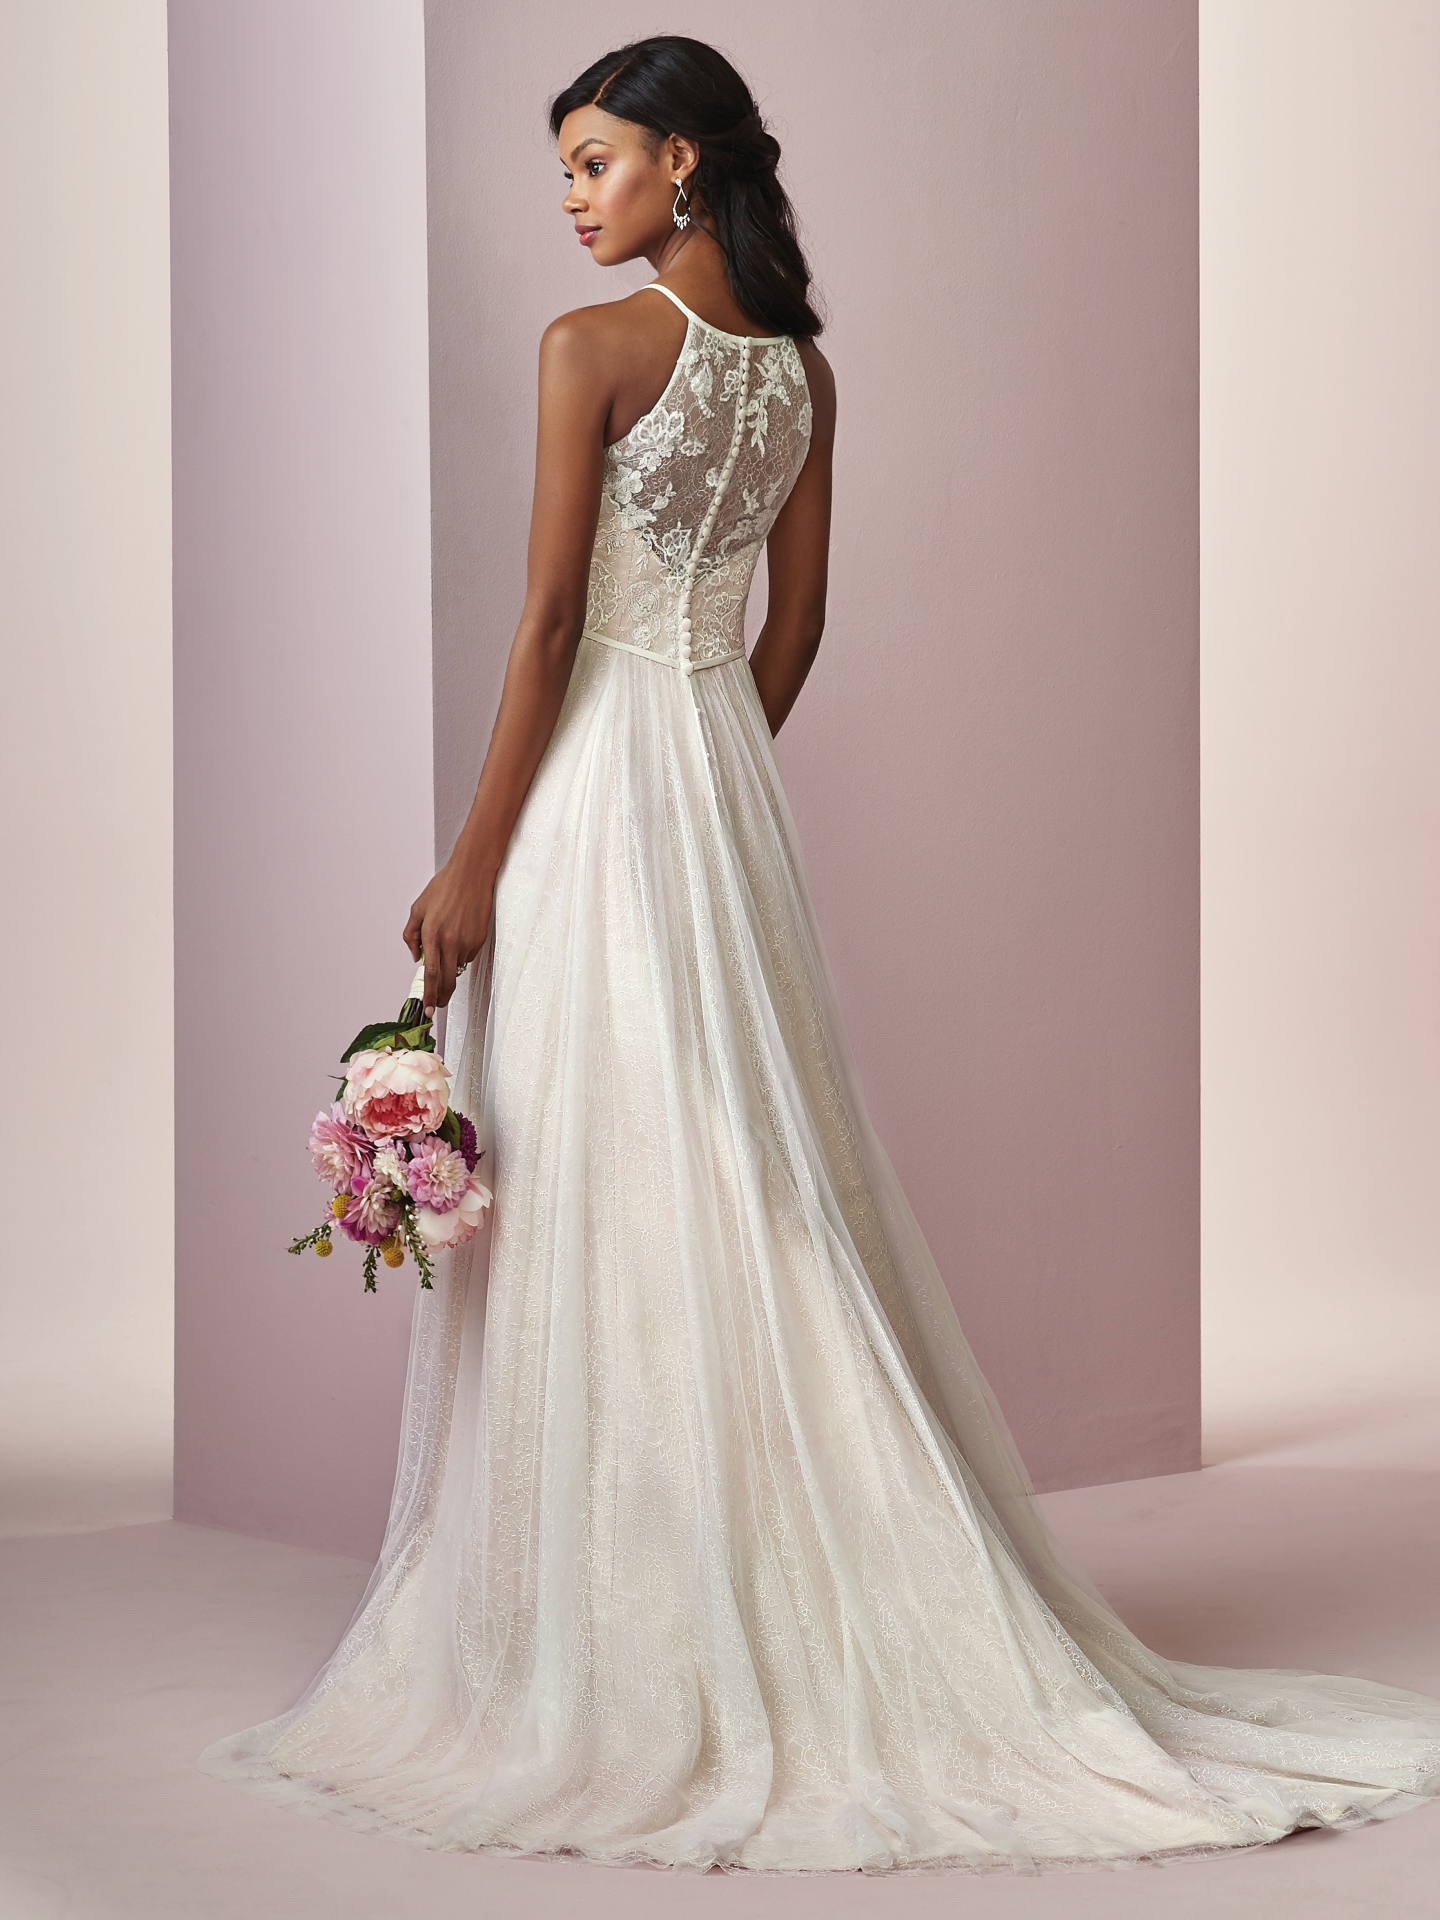 10 relaxed wedding dresses from our Camille collection by Rebecca Ingram - Choose Heidi for cool and modern.